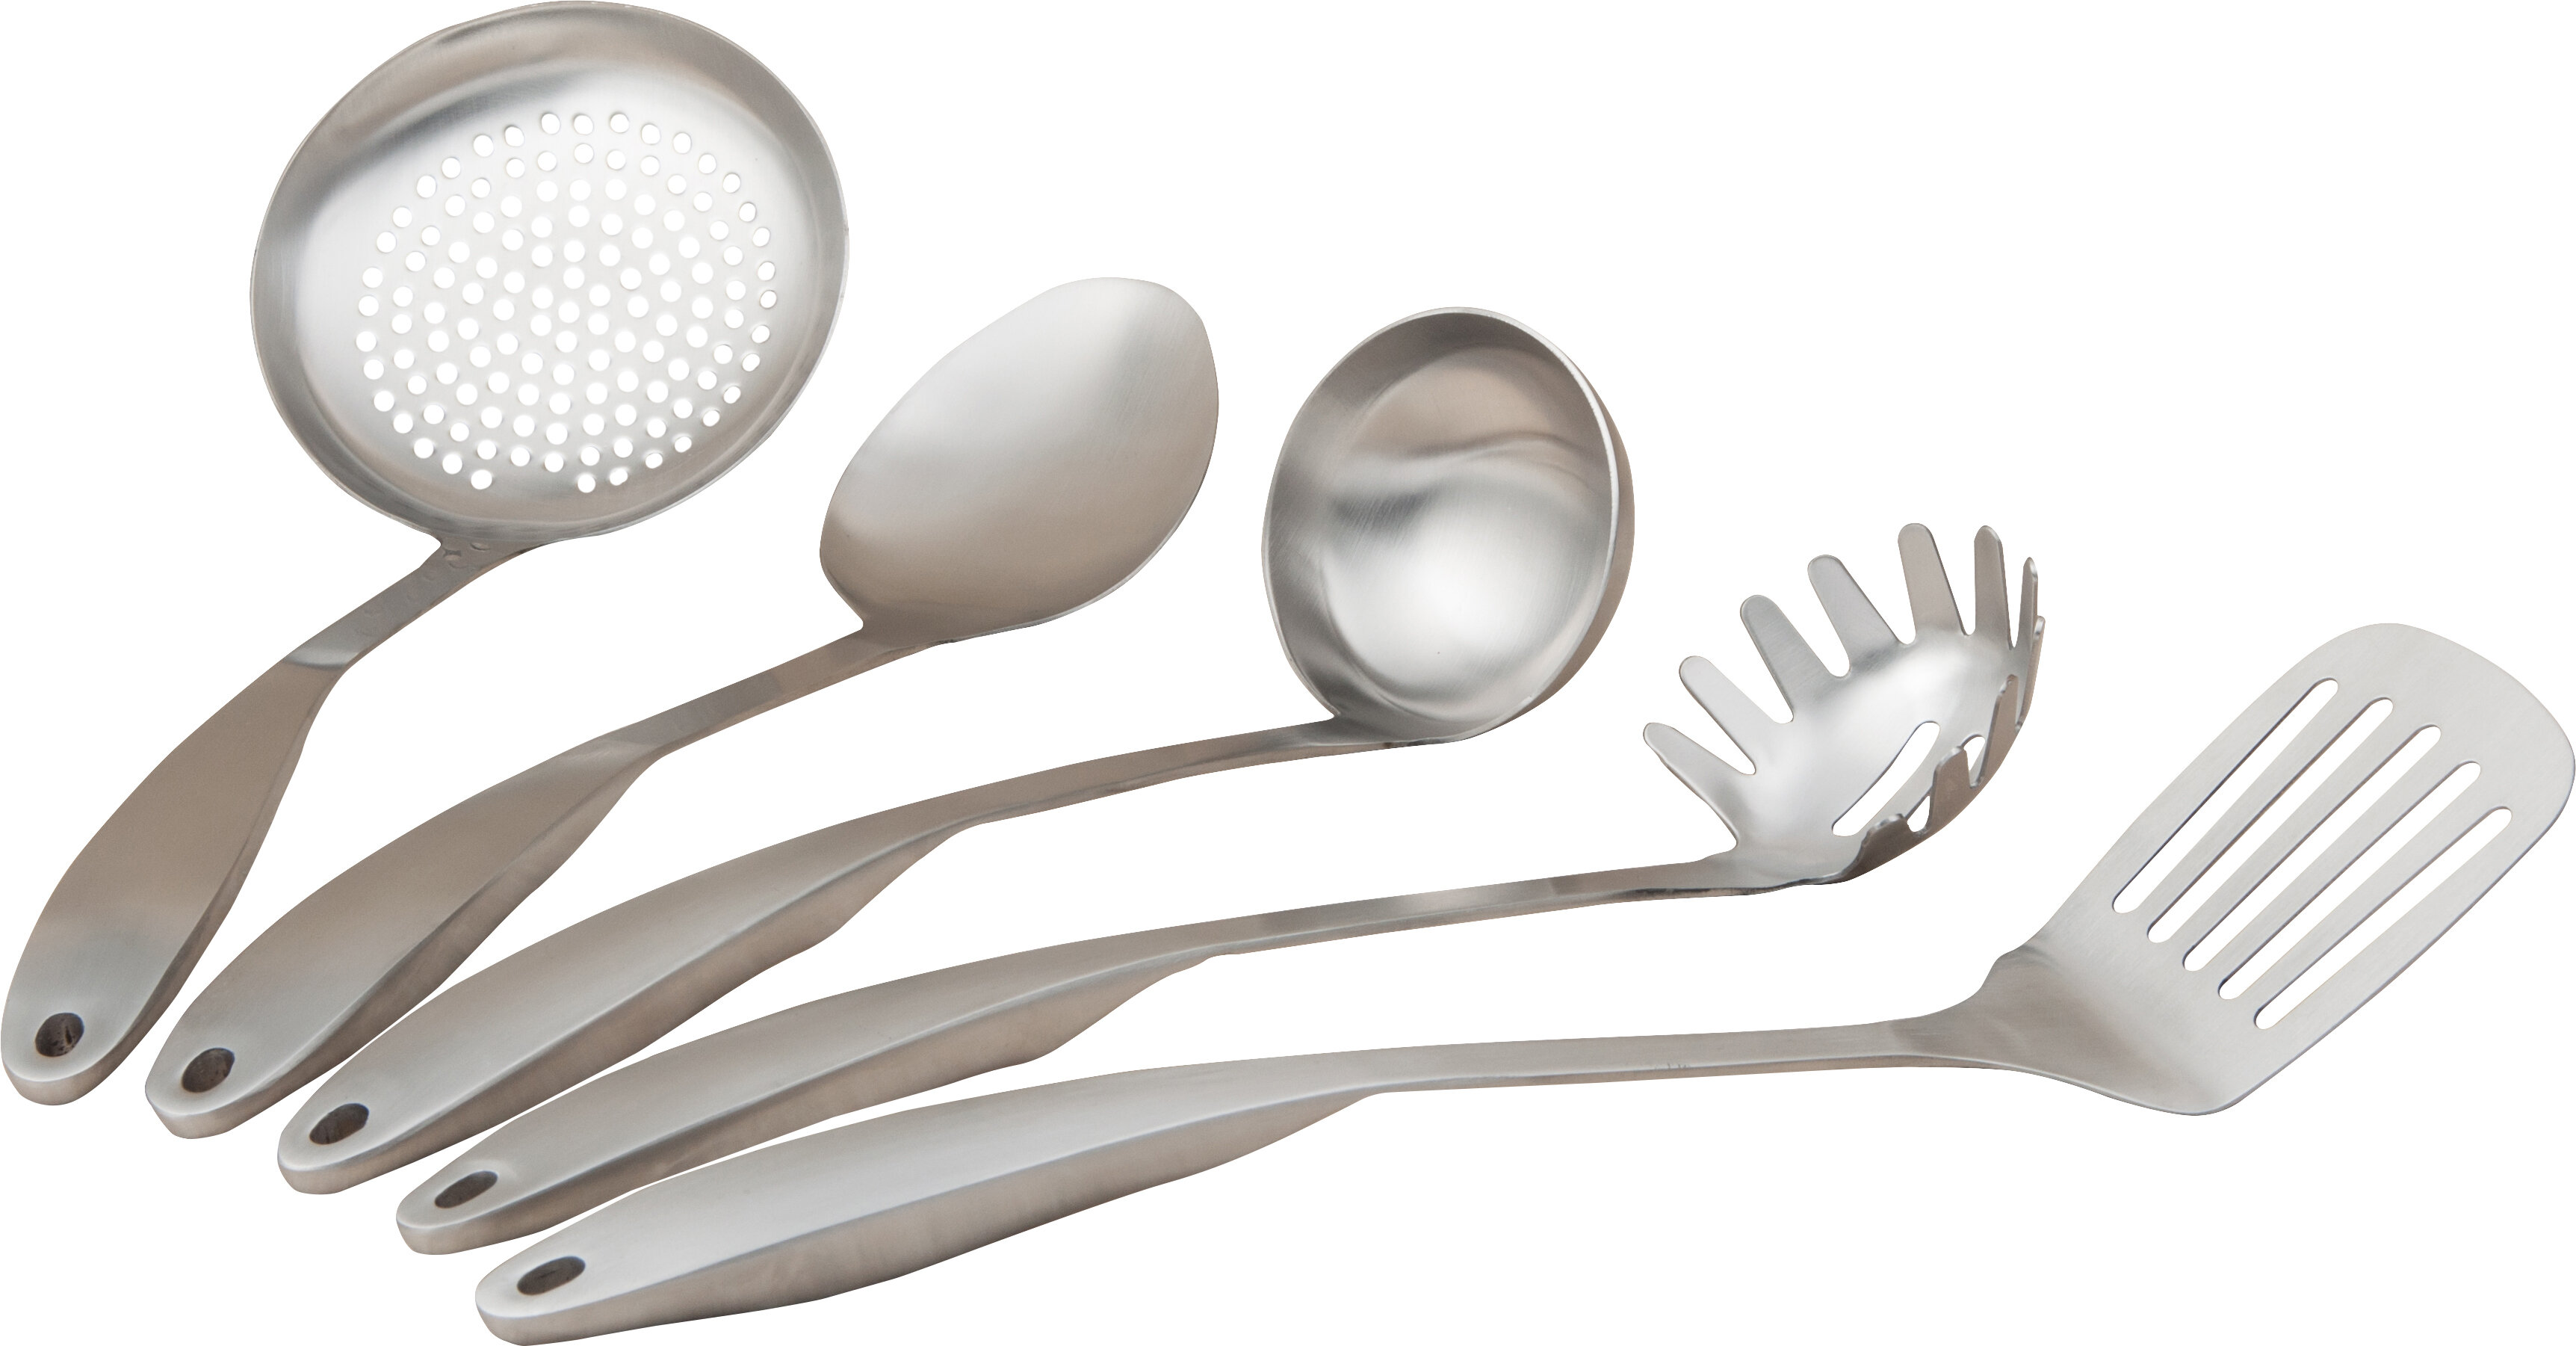 Cook Pro 5 Piece Stainless Steel Professional Kitchen Tool Set Reviews Wayfair